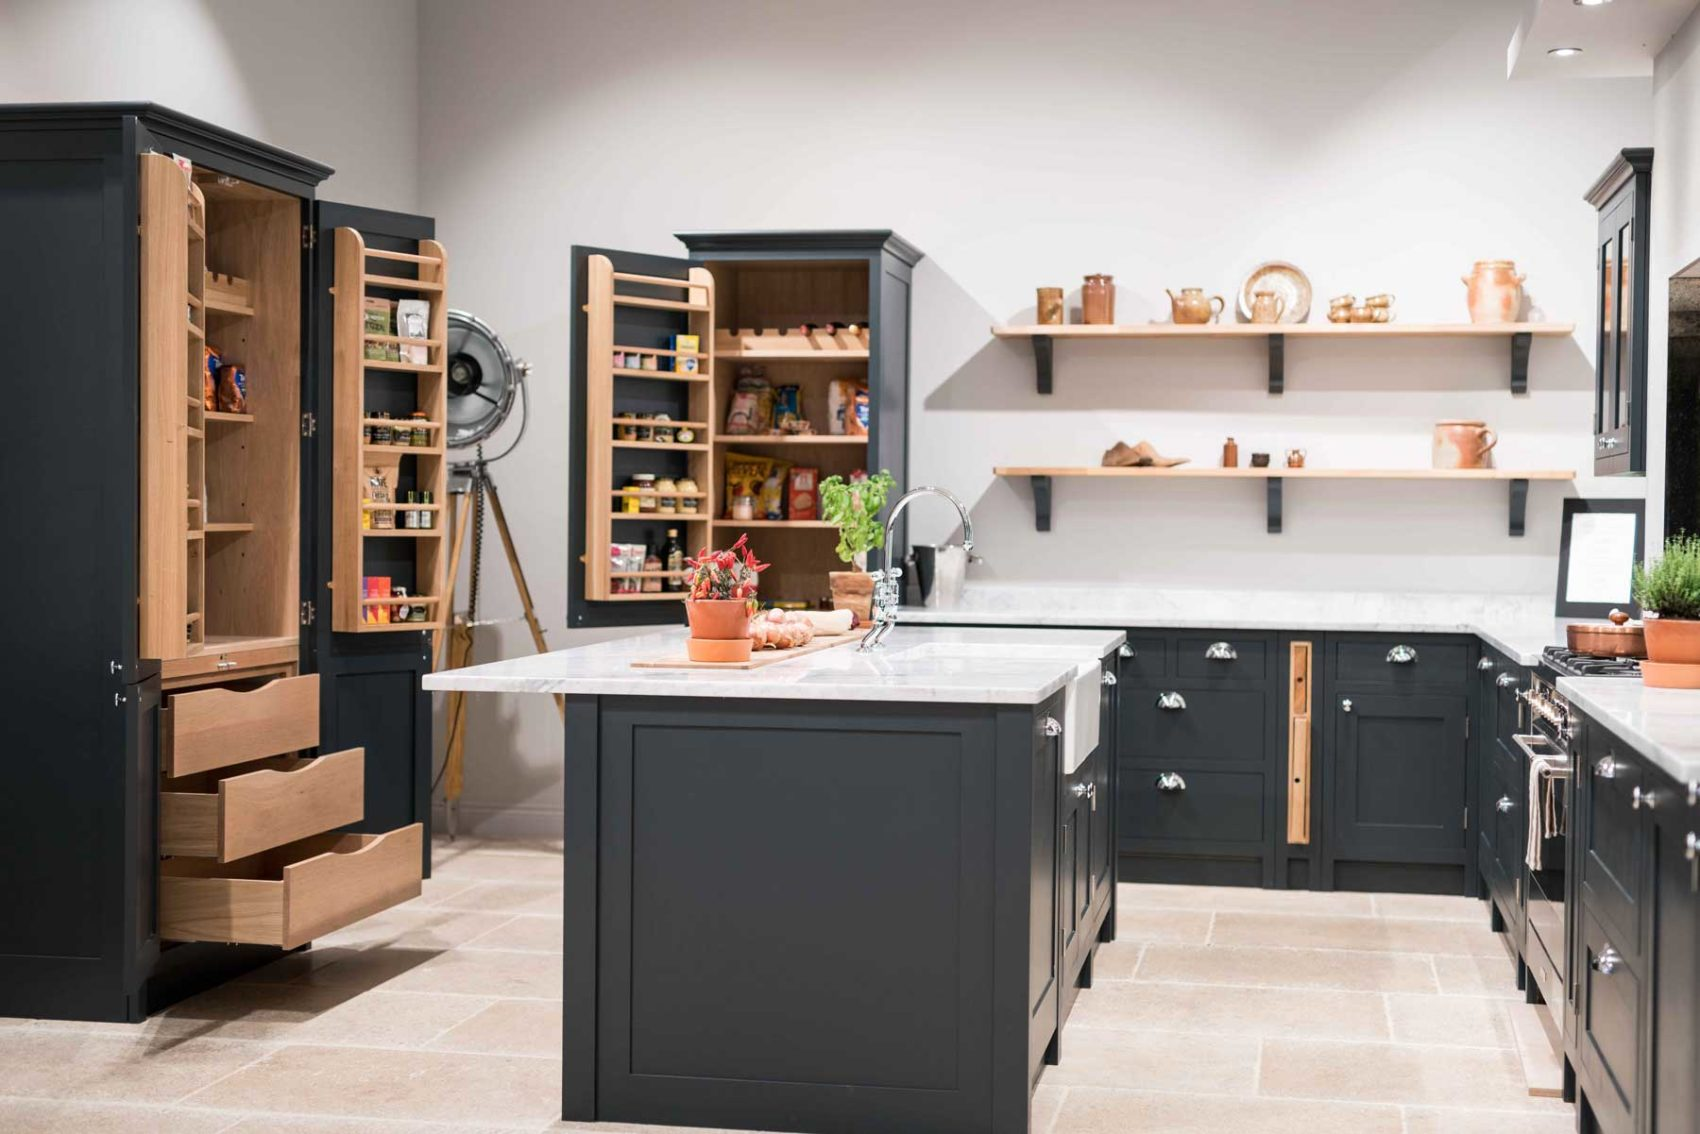 Olive & Barr Shaker kitchen with open cupboards and Island.